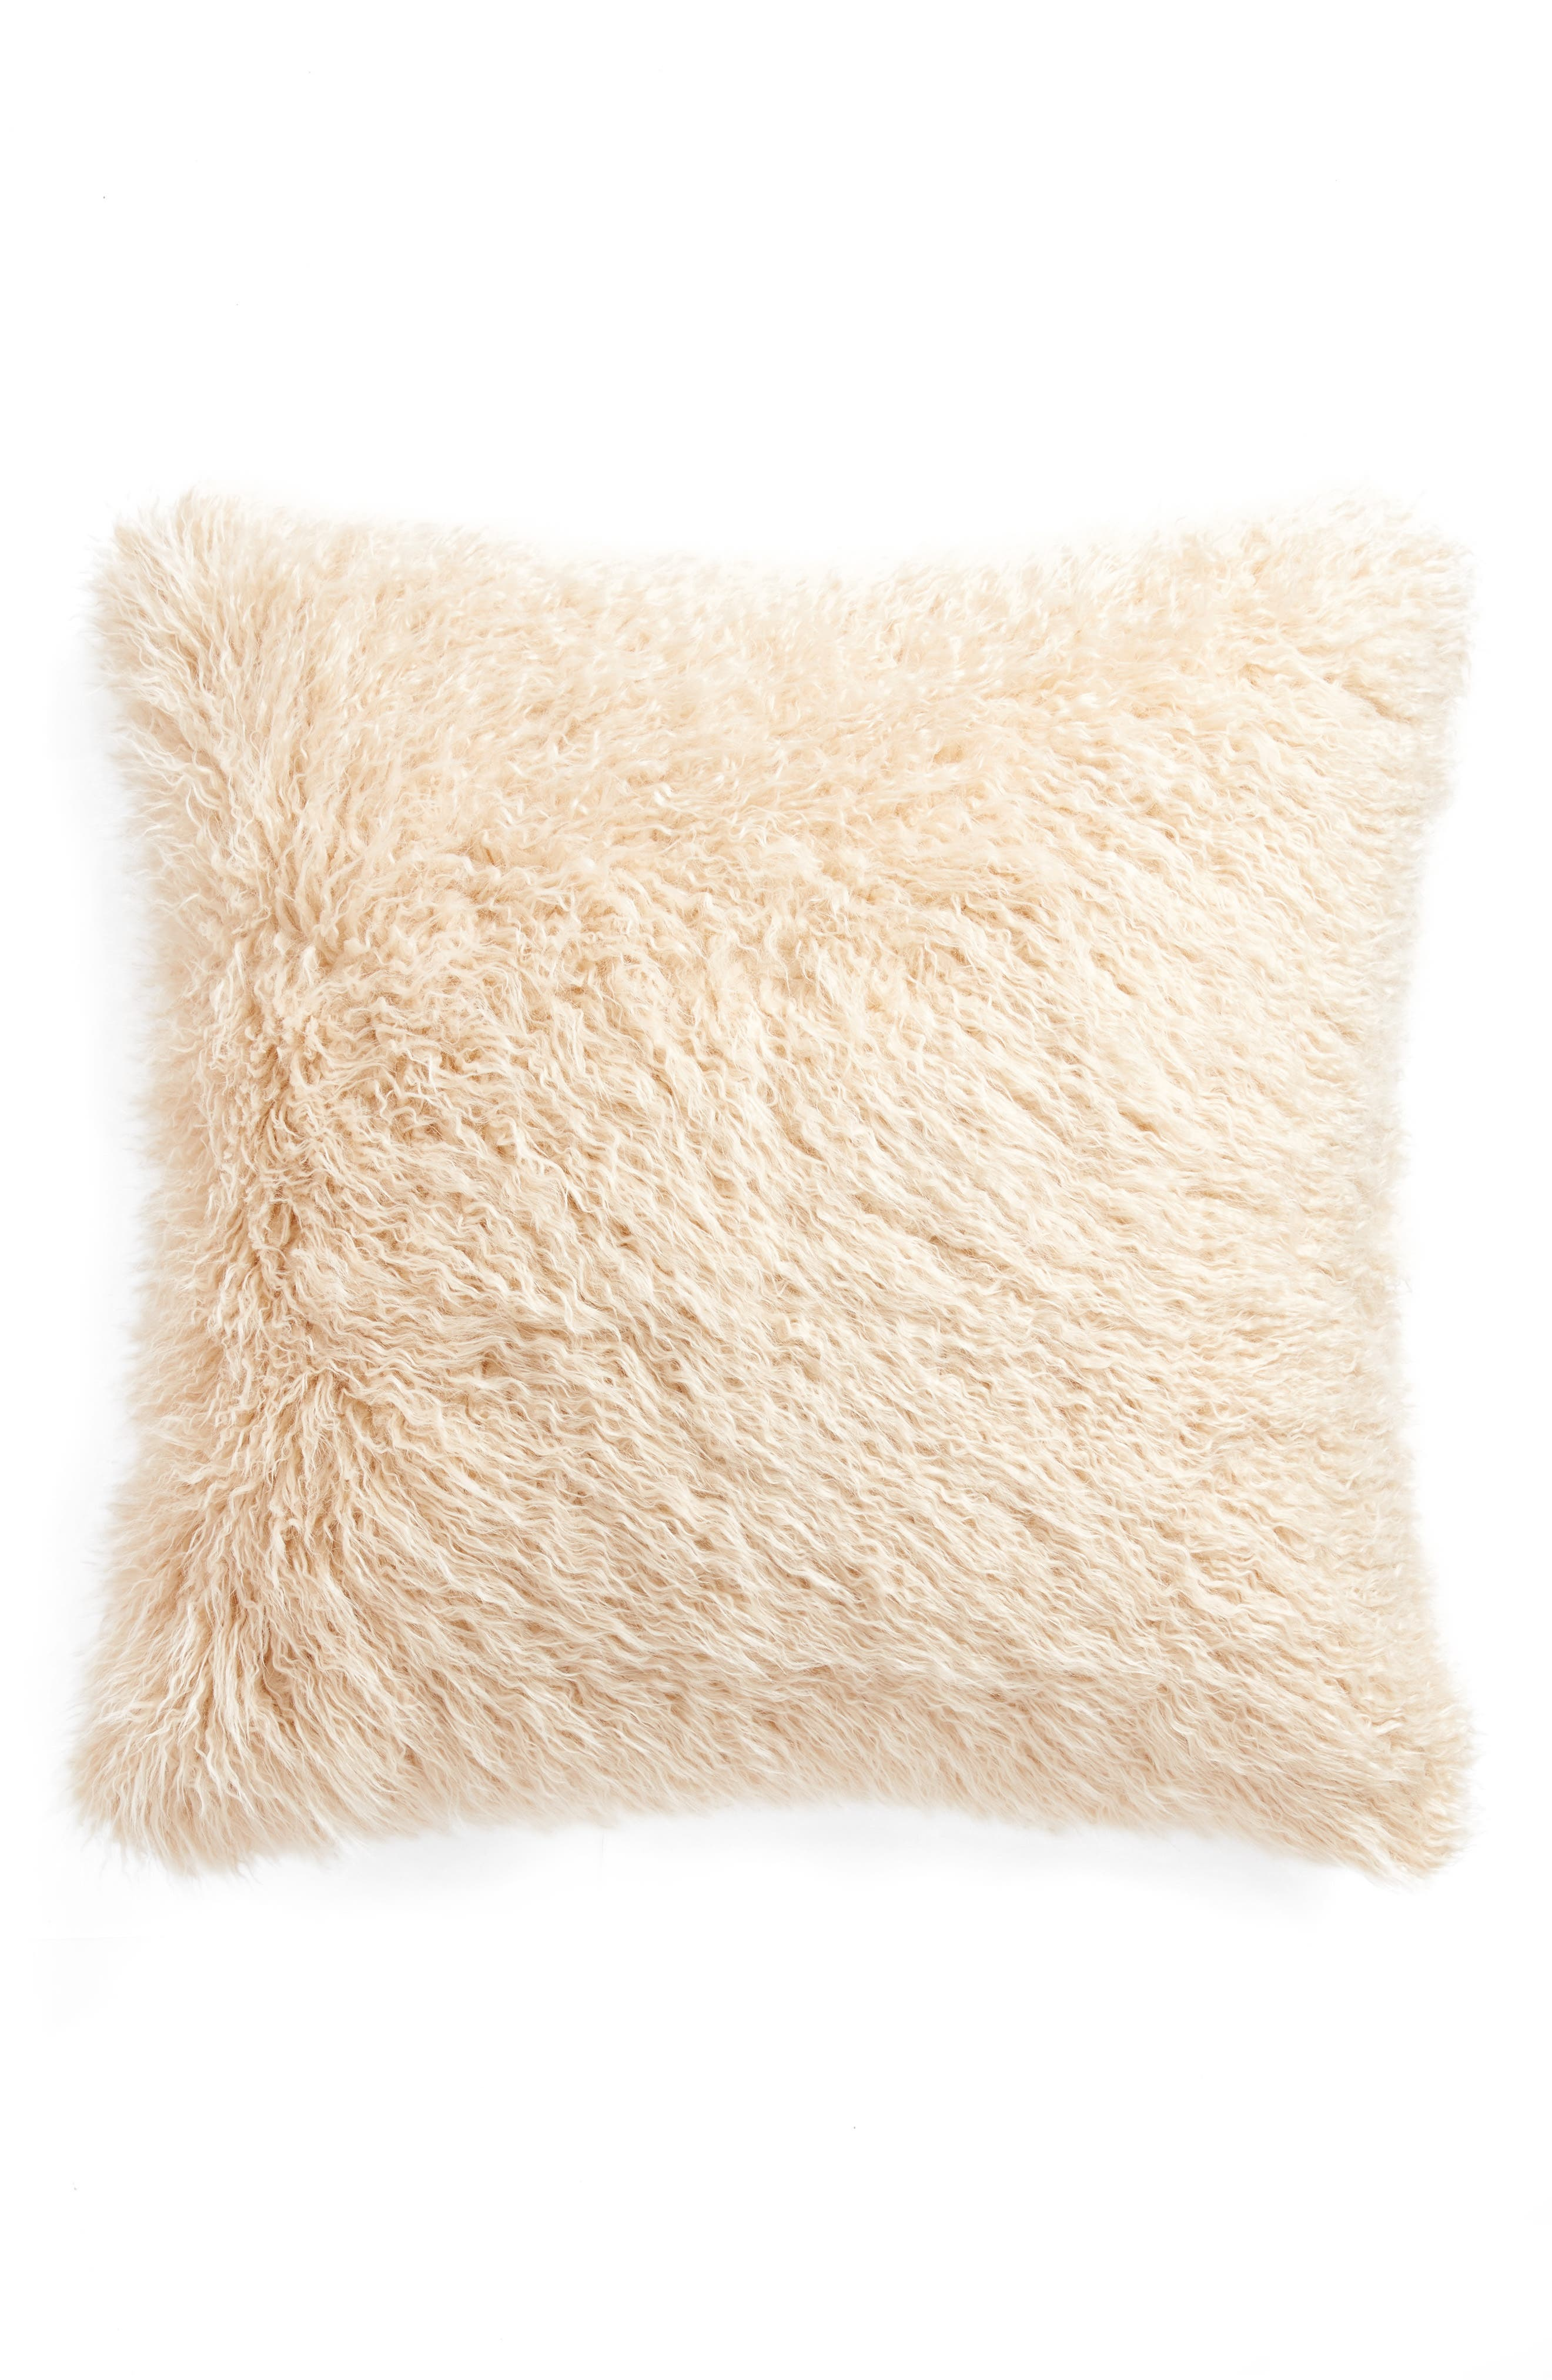 Curly Faux Fur Pillow,                         Main,                         color, Beige Beach